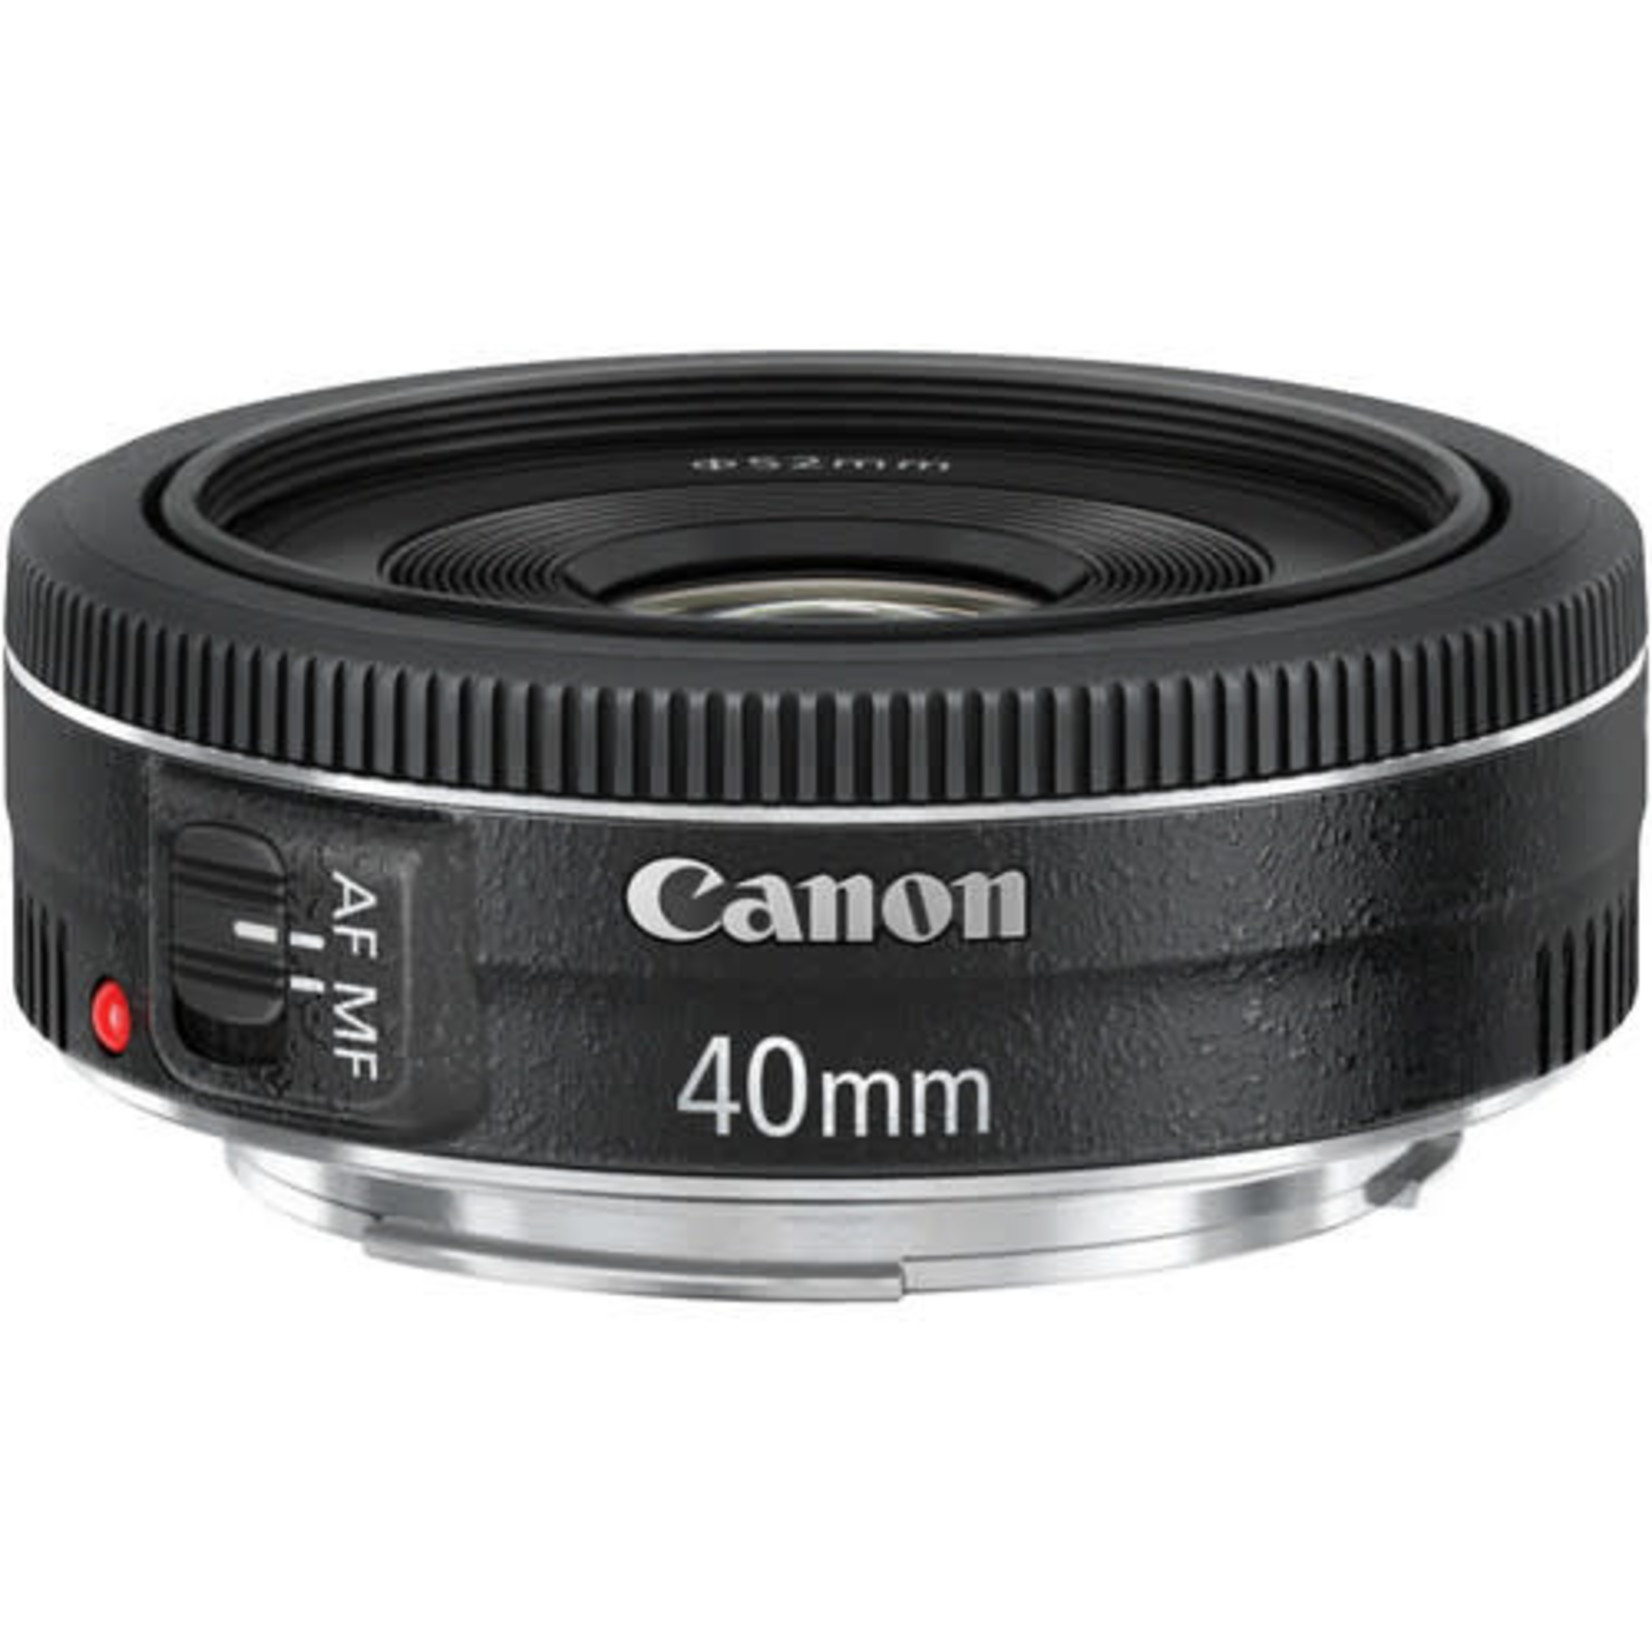 Canon Canon EF 40mm f/2.8 STM Lens